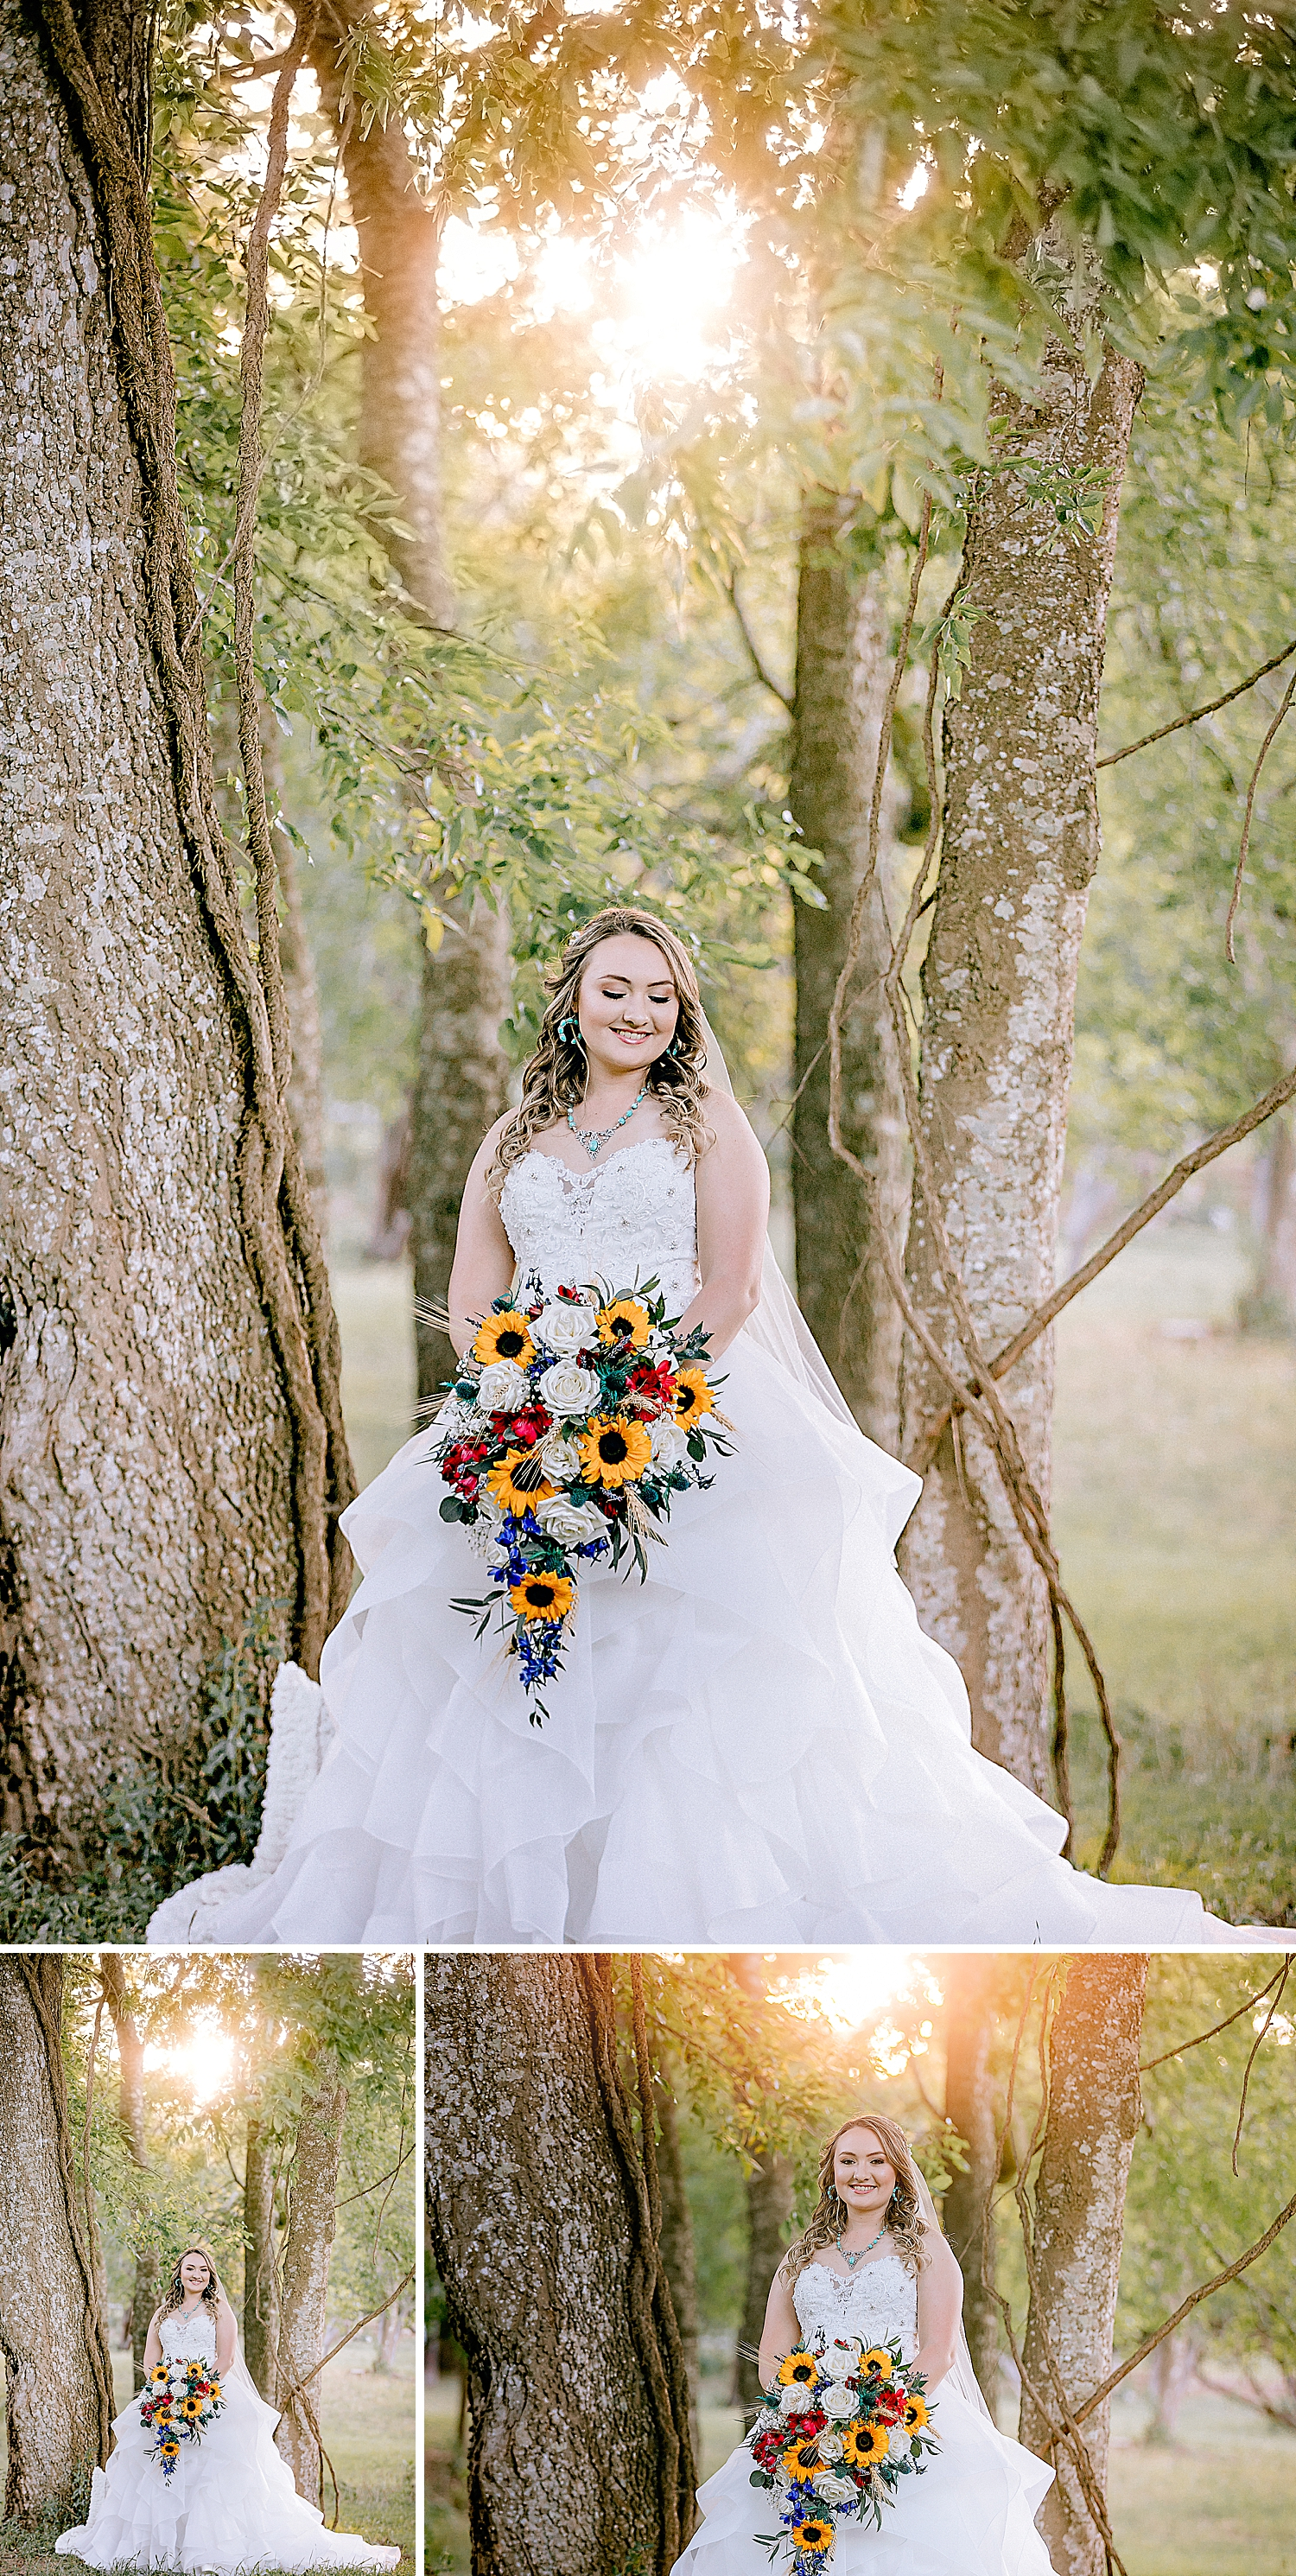 Carly-Barton-Photography-Texas-Bridals-Boerne-Rustic-Wedding-Photos_0006.jpg